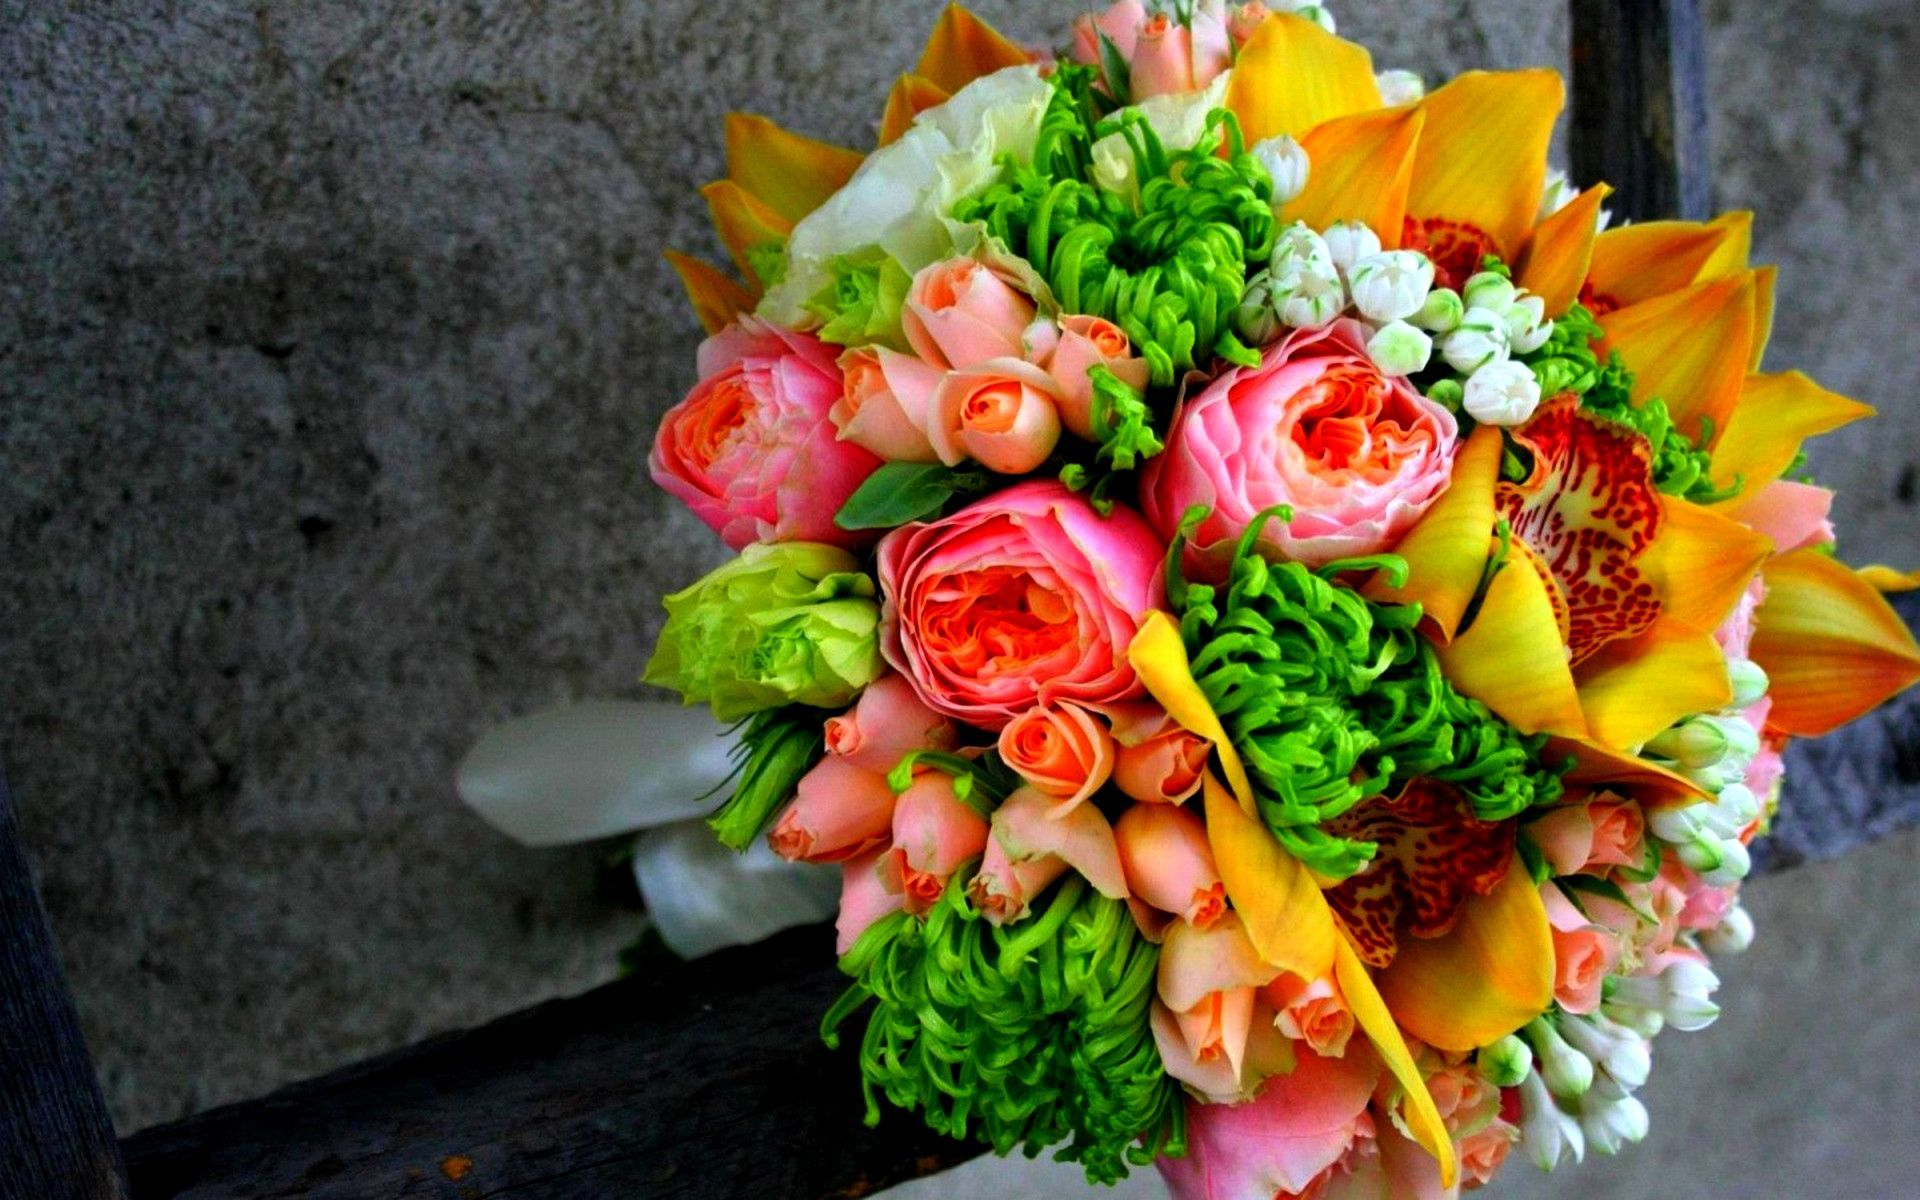 Flower Bouquet Full HD Wallpaper and Background Image | 1920x1200 ...